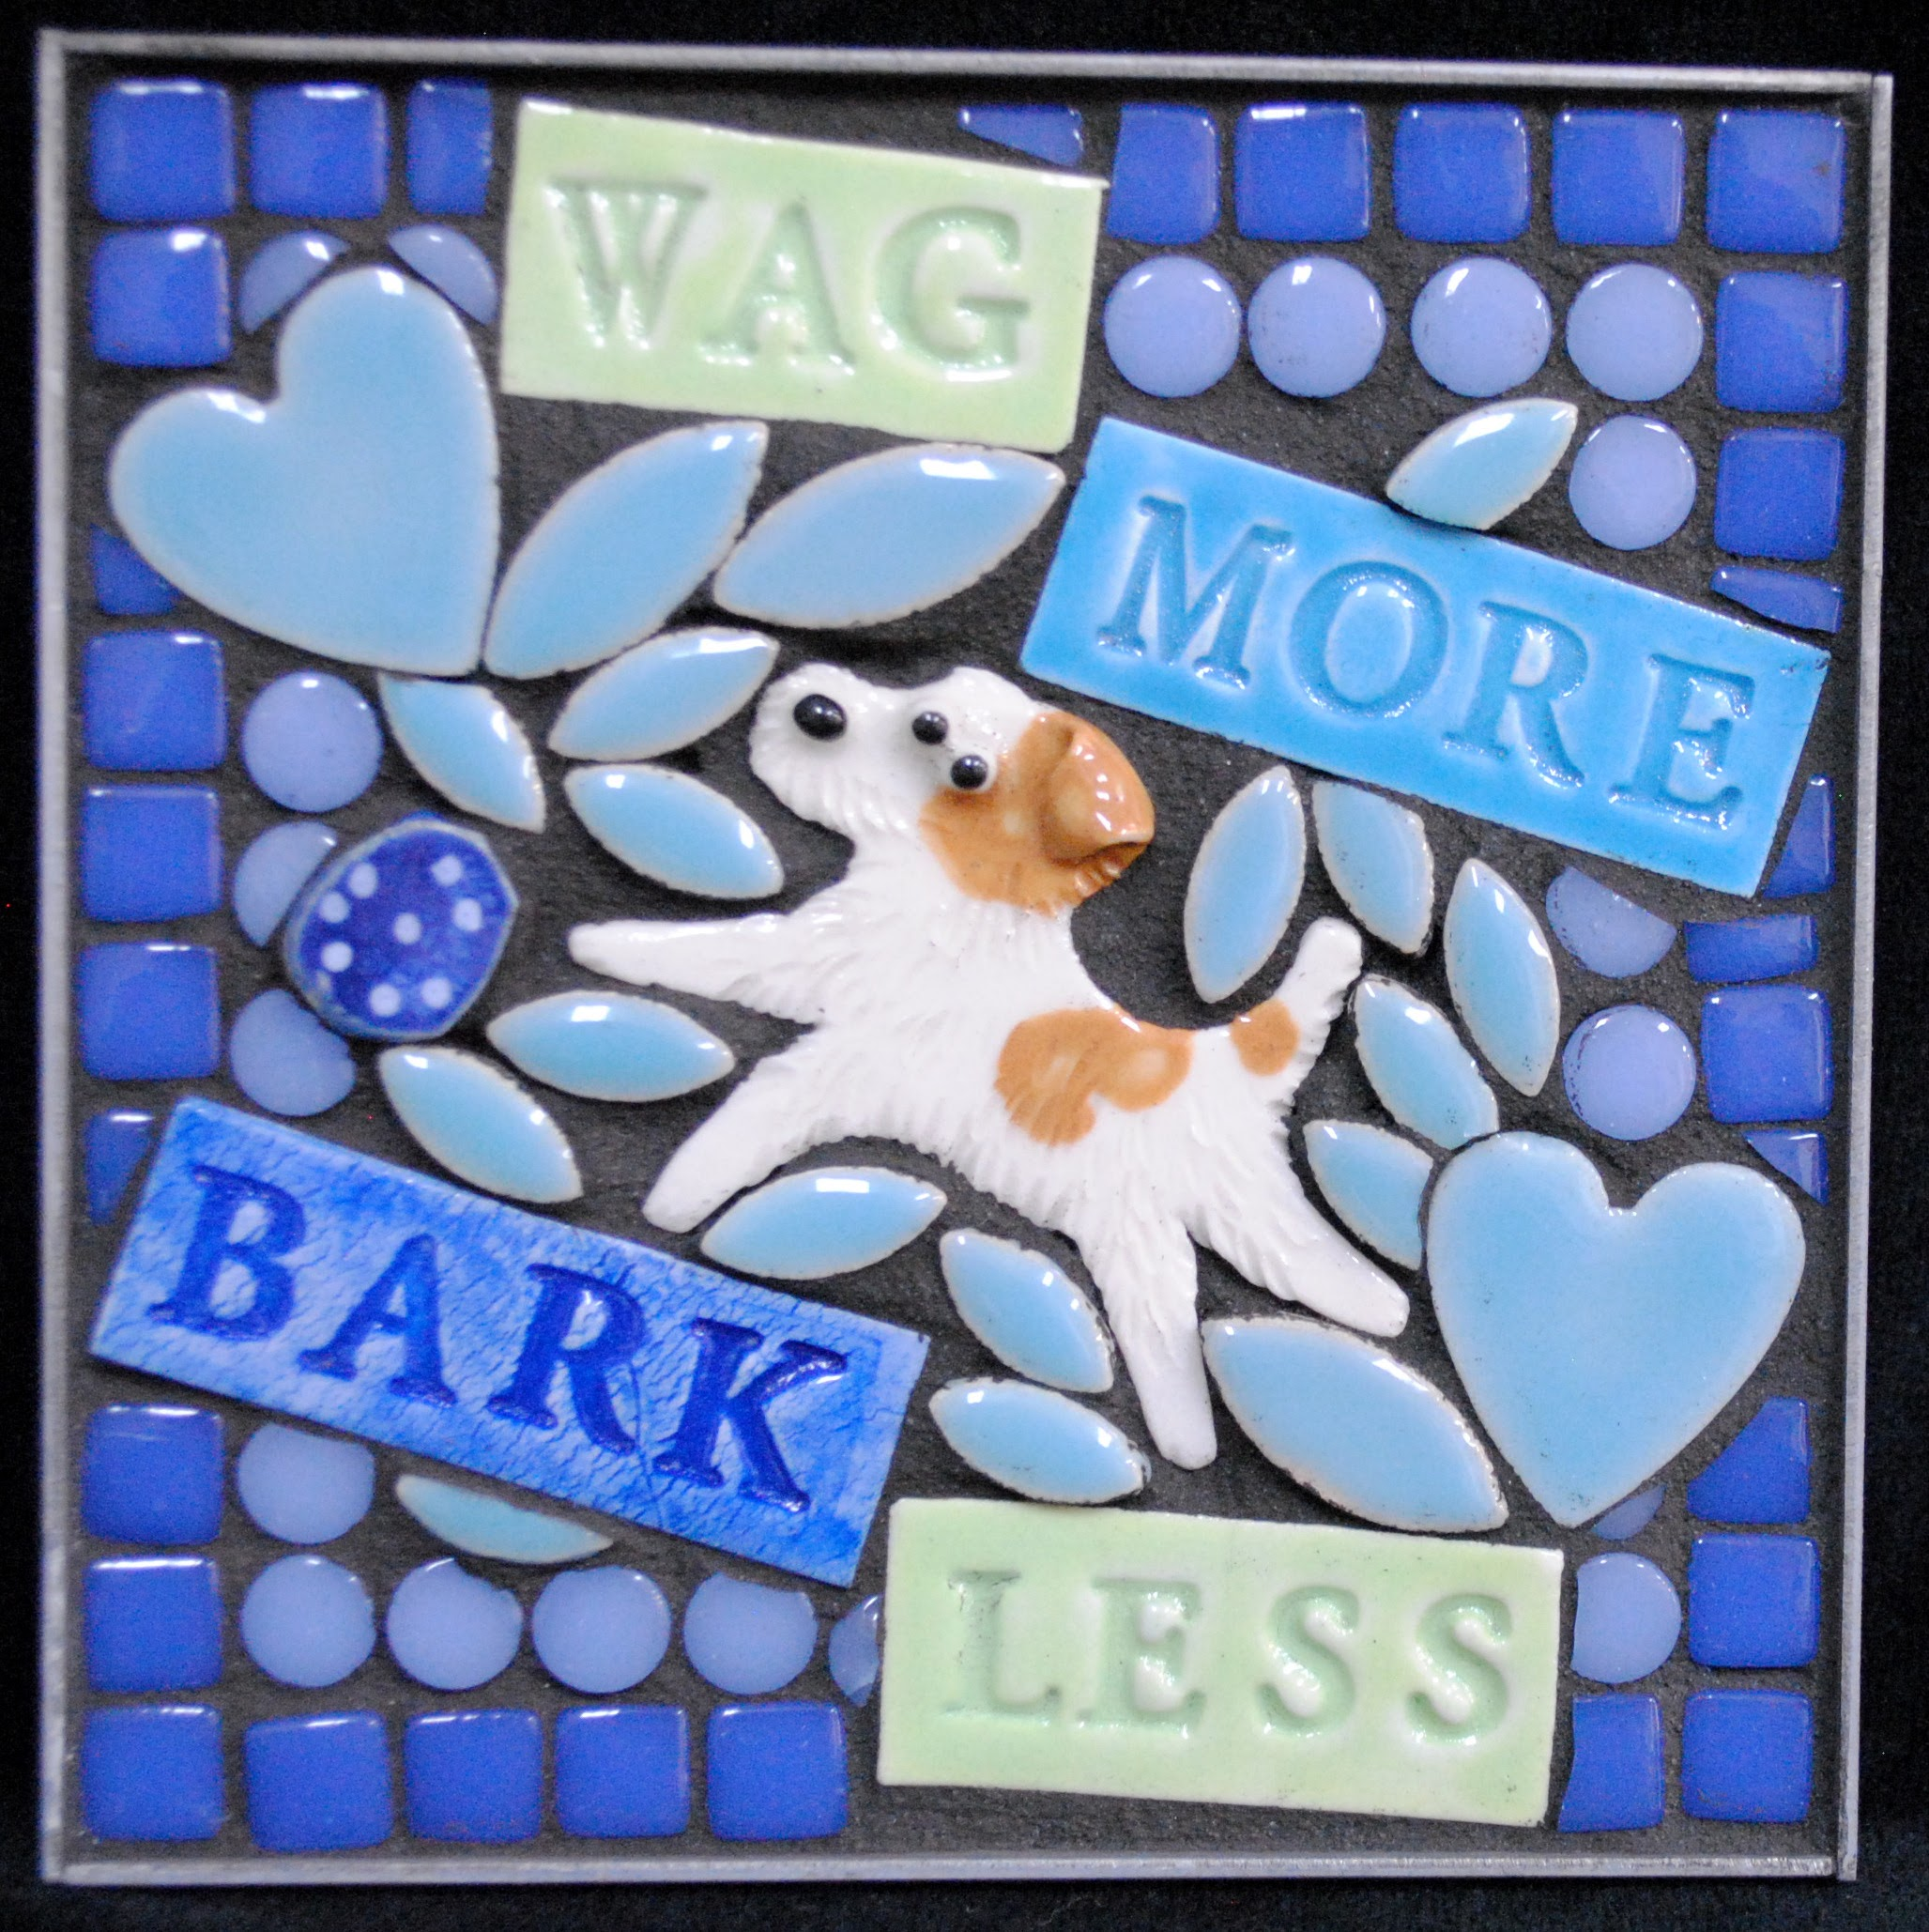 Wag More Bark Less Wire Fox Terrier Mini Mosaic by Brenda Pokorny